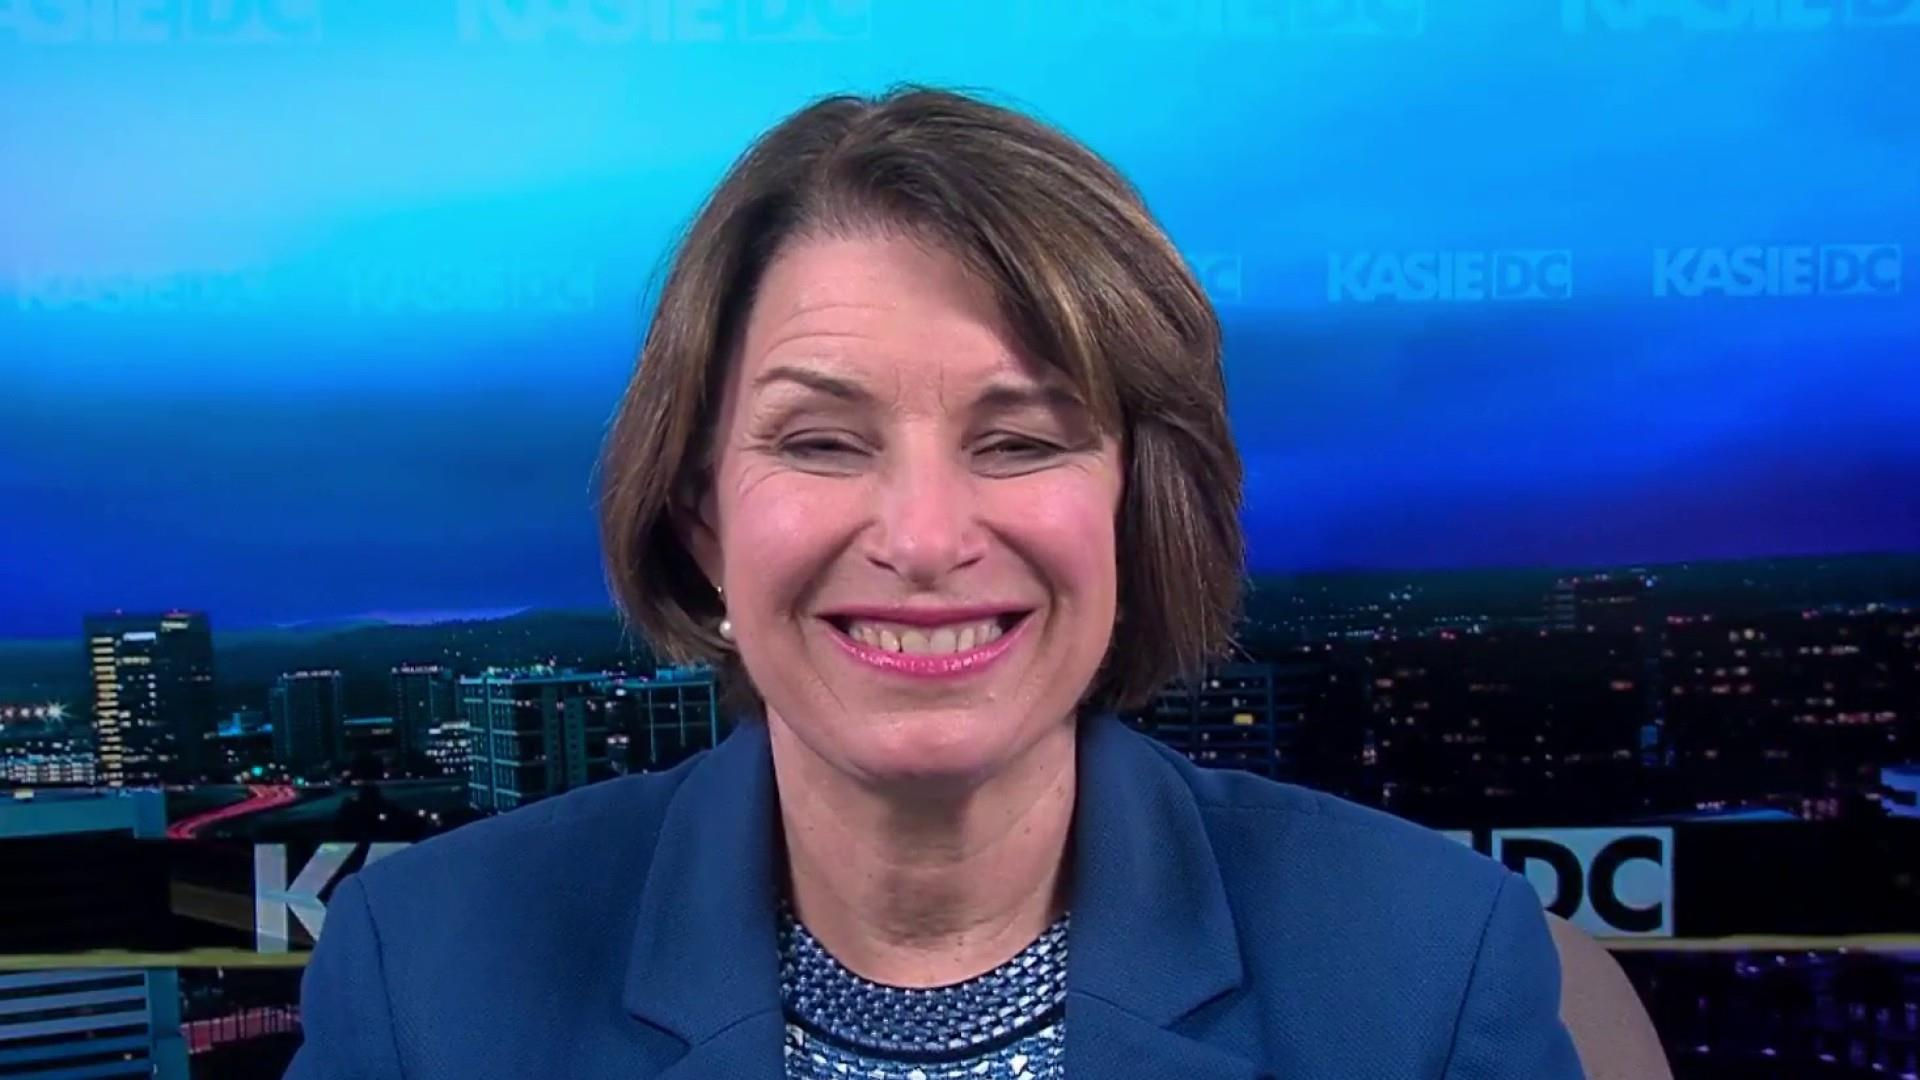 Sen. Klobuchar: President Trump 'has fueled hate in this country'